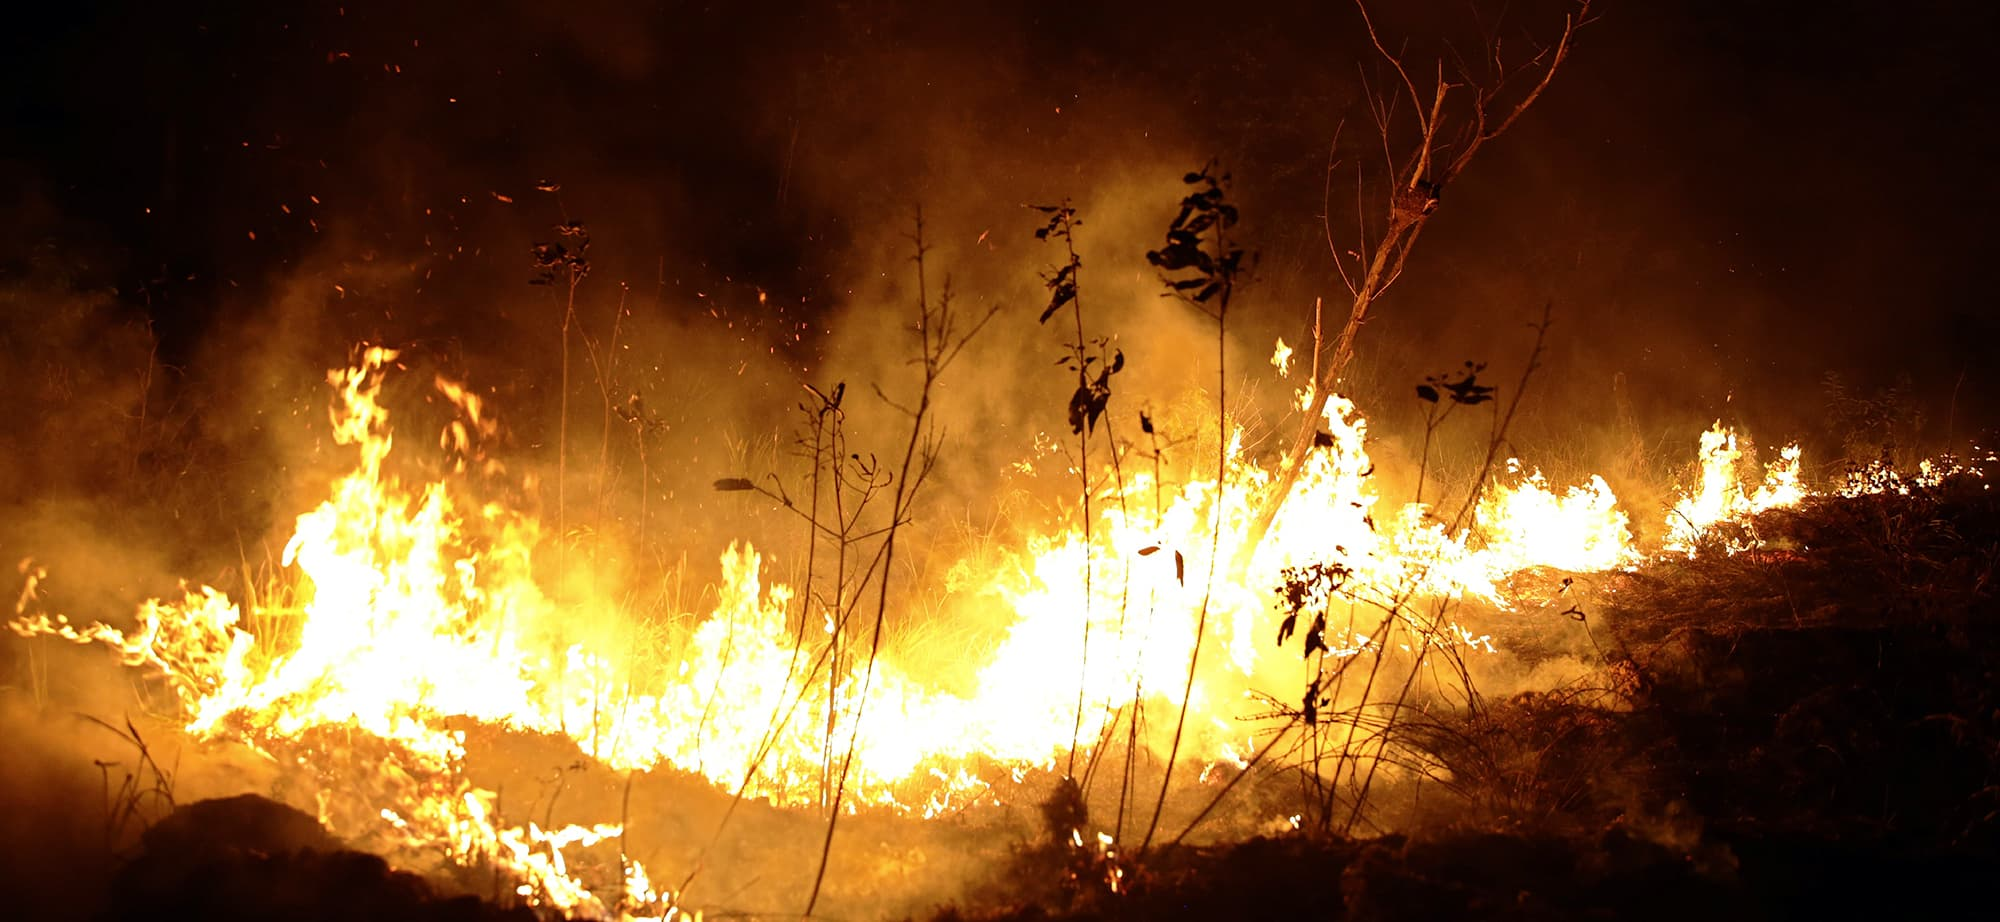 A fire burns in highway margins in the city of Porto Velho, Rondonia state, part of Brazil's Amazon, Sunday, Aug. 25, 2019. (AP Photo/Eraldo Peres) — Copyright 2018 The Associated Press. All rights reserved